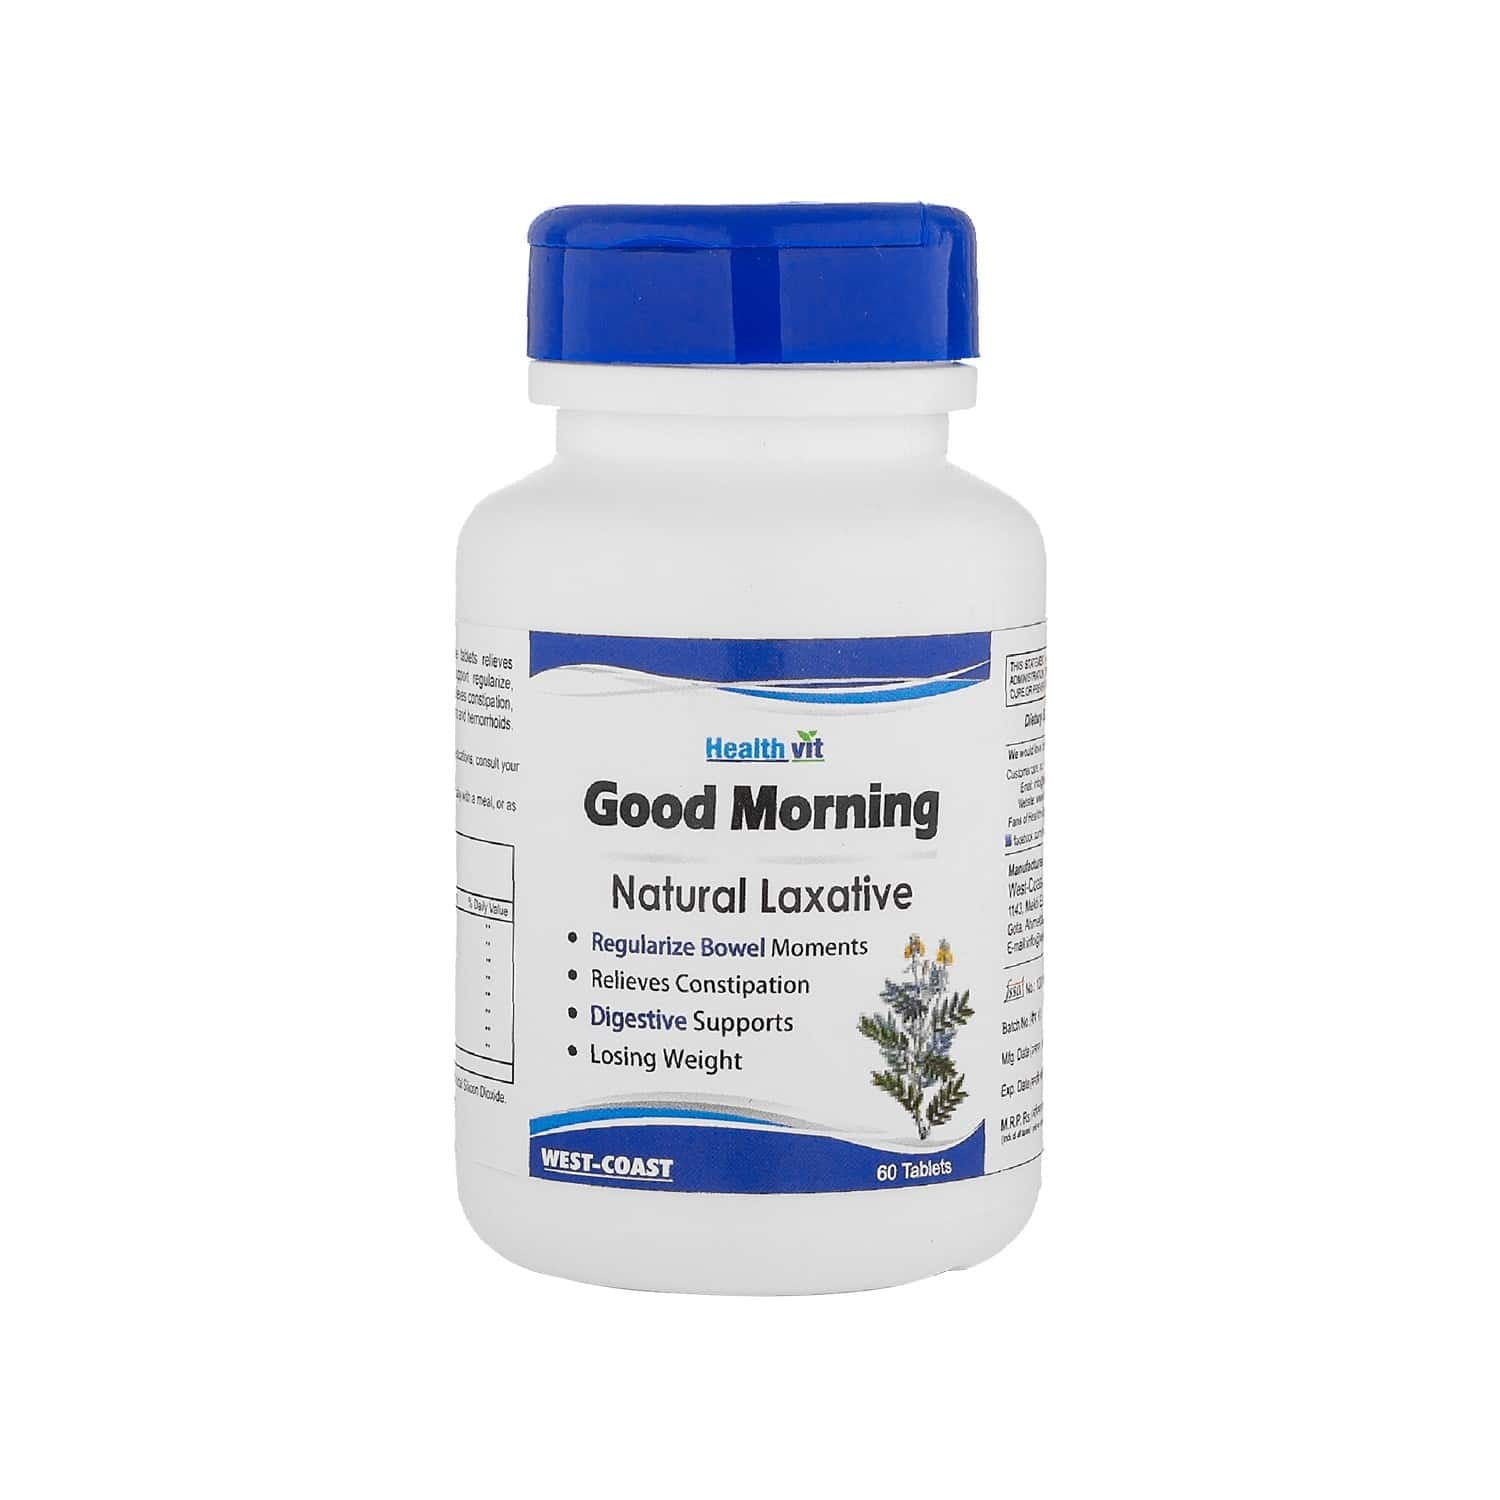 Healthvit Good Morning Natural Laxative Tablets Bottle Of 60